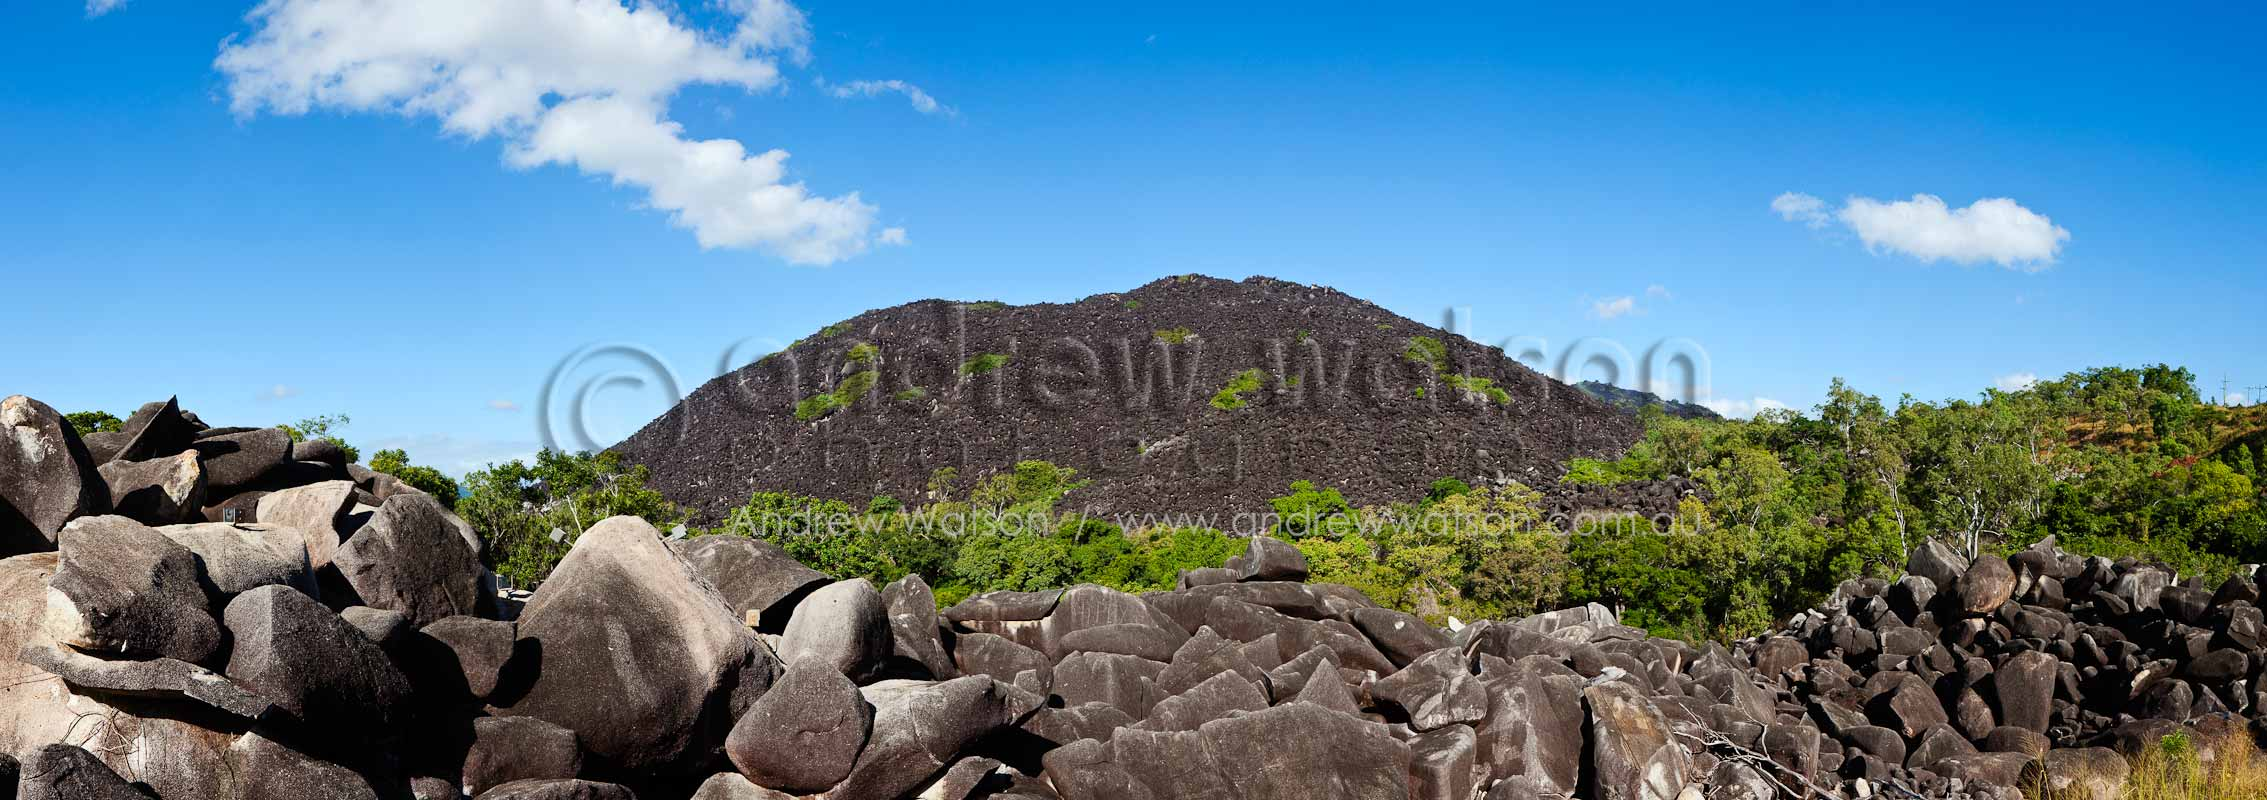 Kalkajaka (Black Mountain) National ParkCooktown, North QueenslandImage available for licensing or as a fine-art print... please enquire